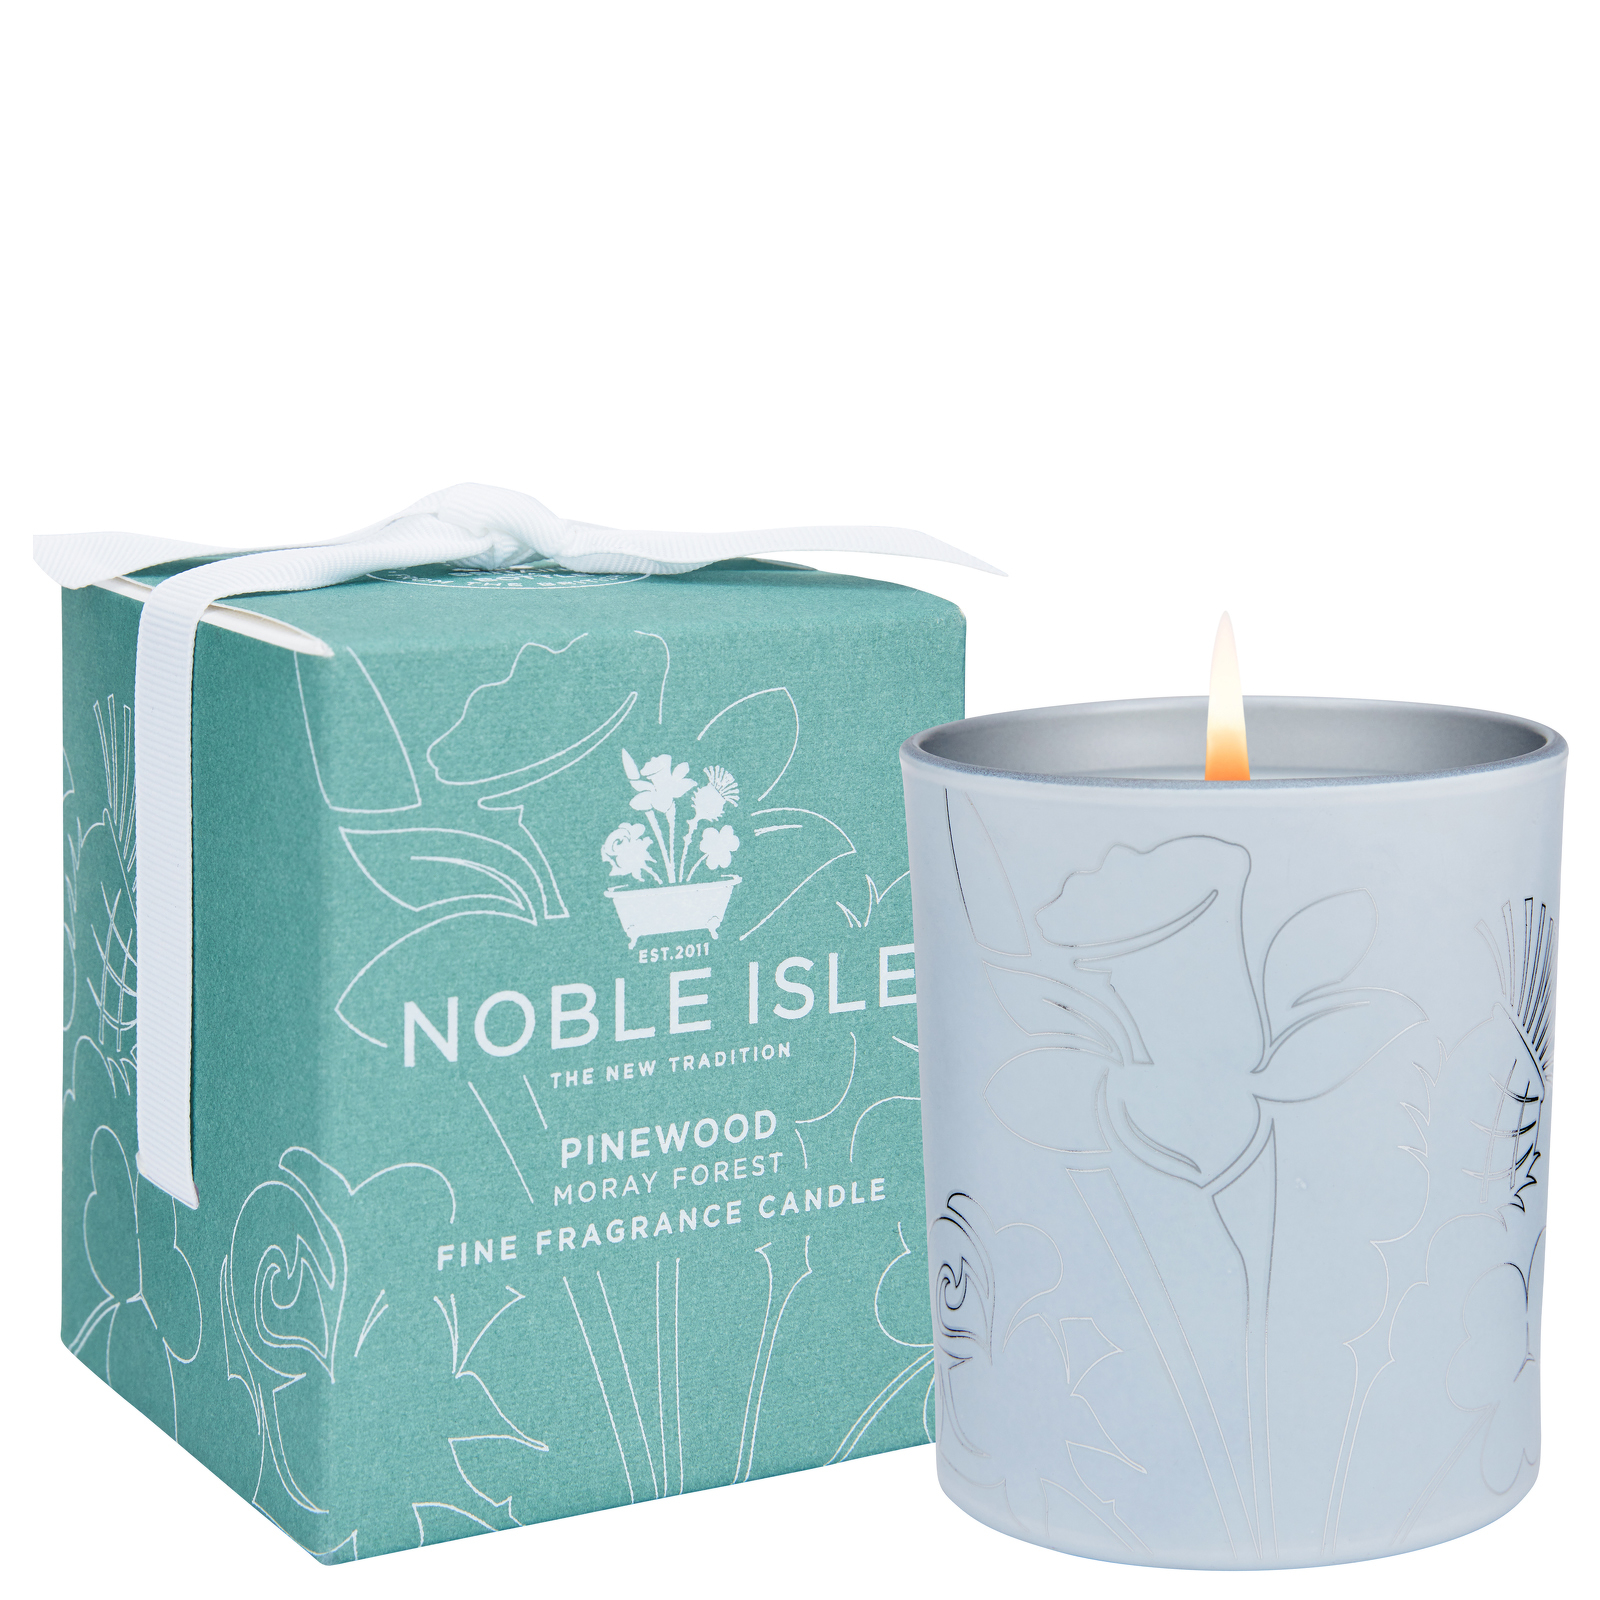 Noble Isle Home Fragrance Pinewood Fine Fragrance Candle 200g / 7.05oz.